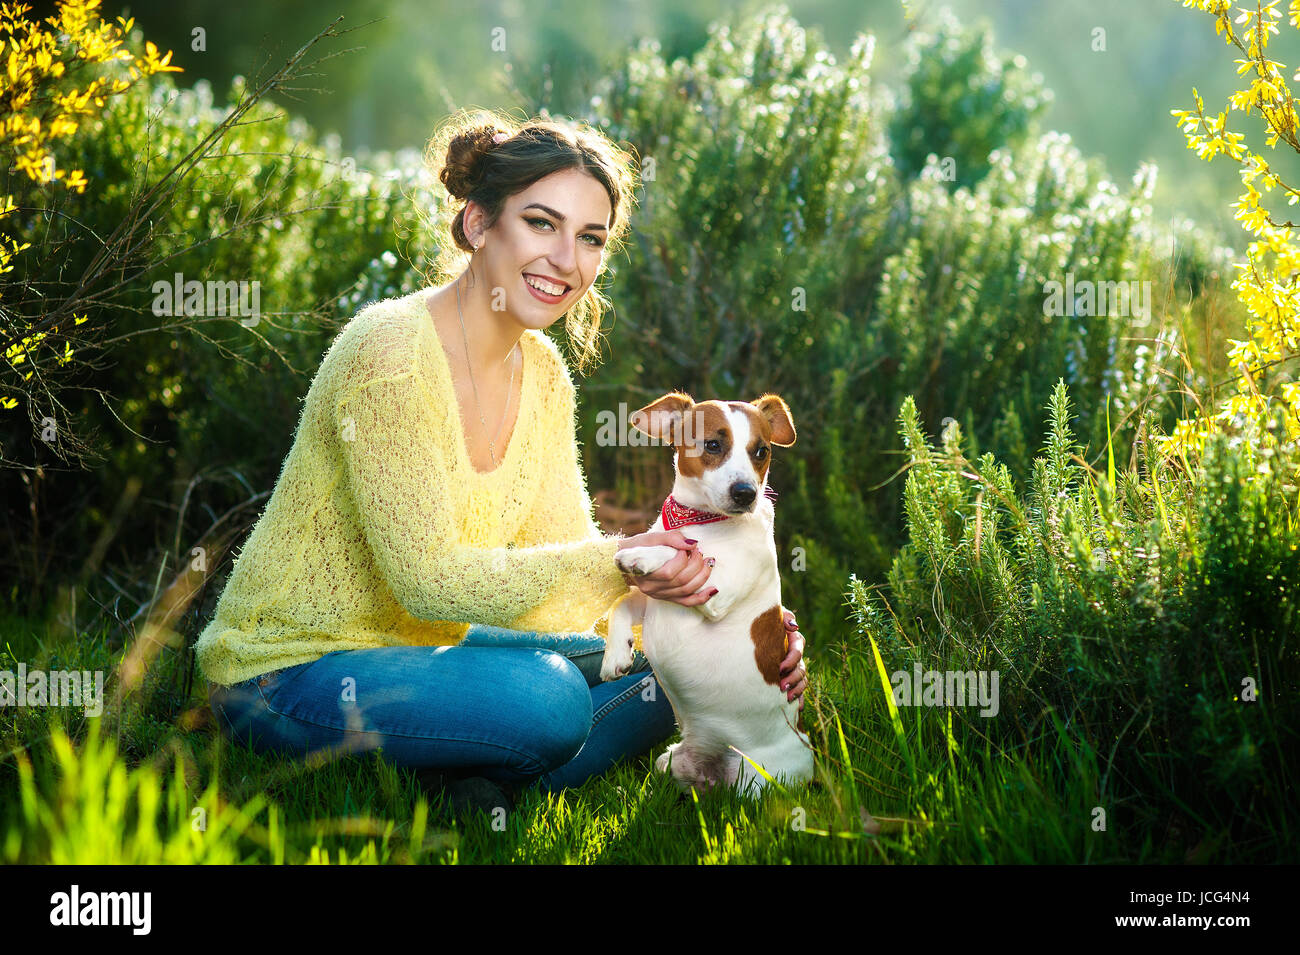 Girl walking with a hunting dog - the Jack Russell Terrier . Close-up. Spring. Copy space. - Stock Image